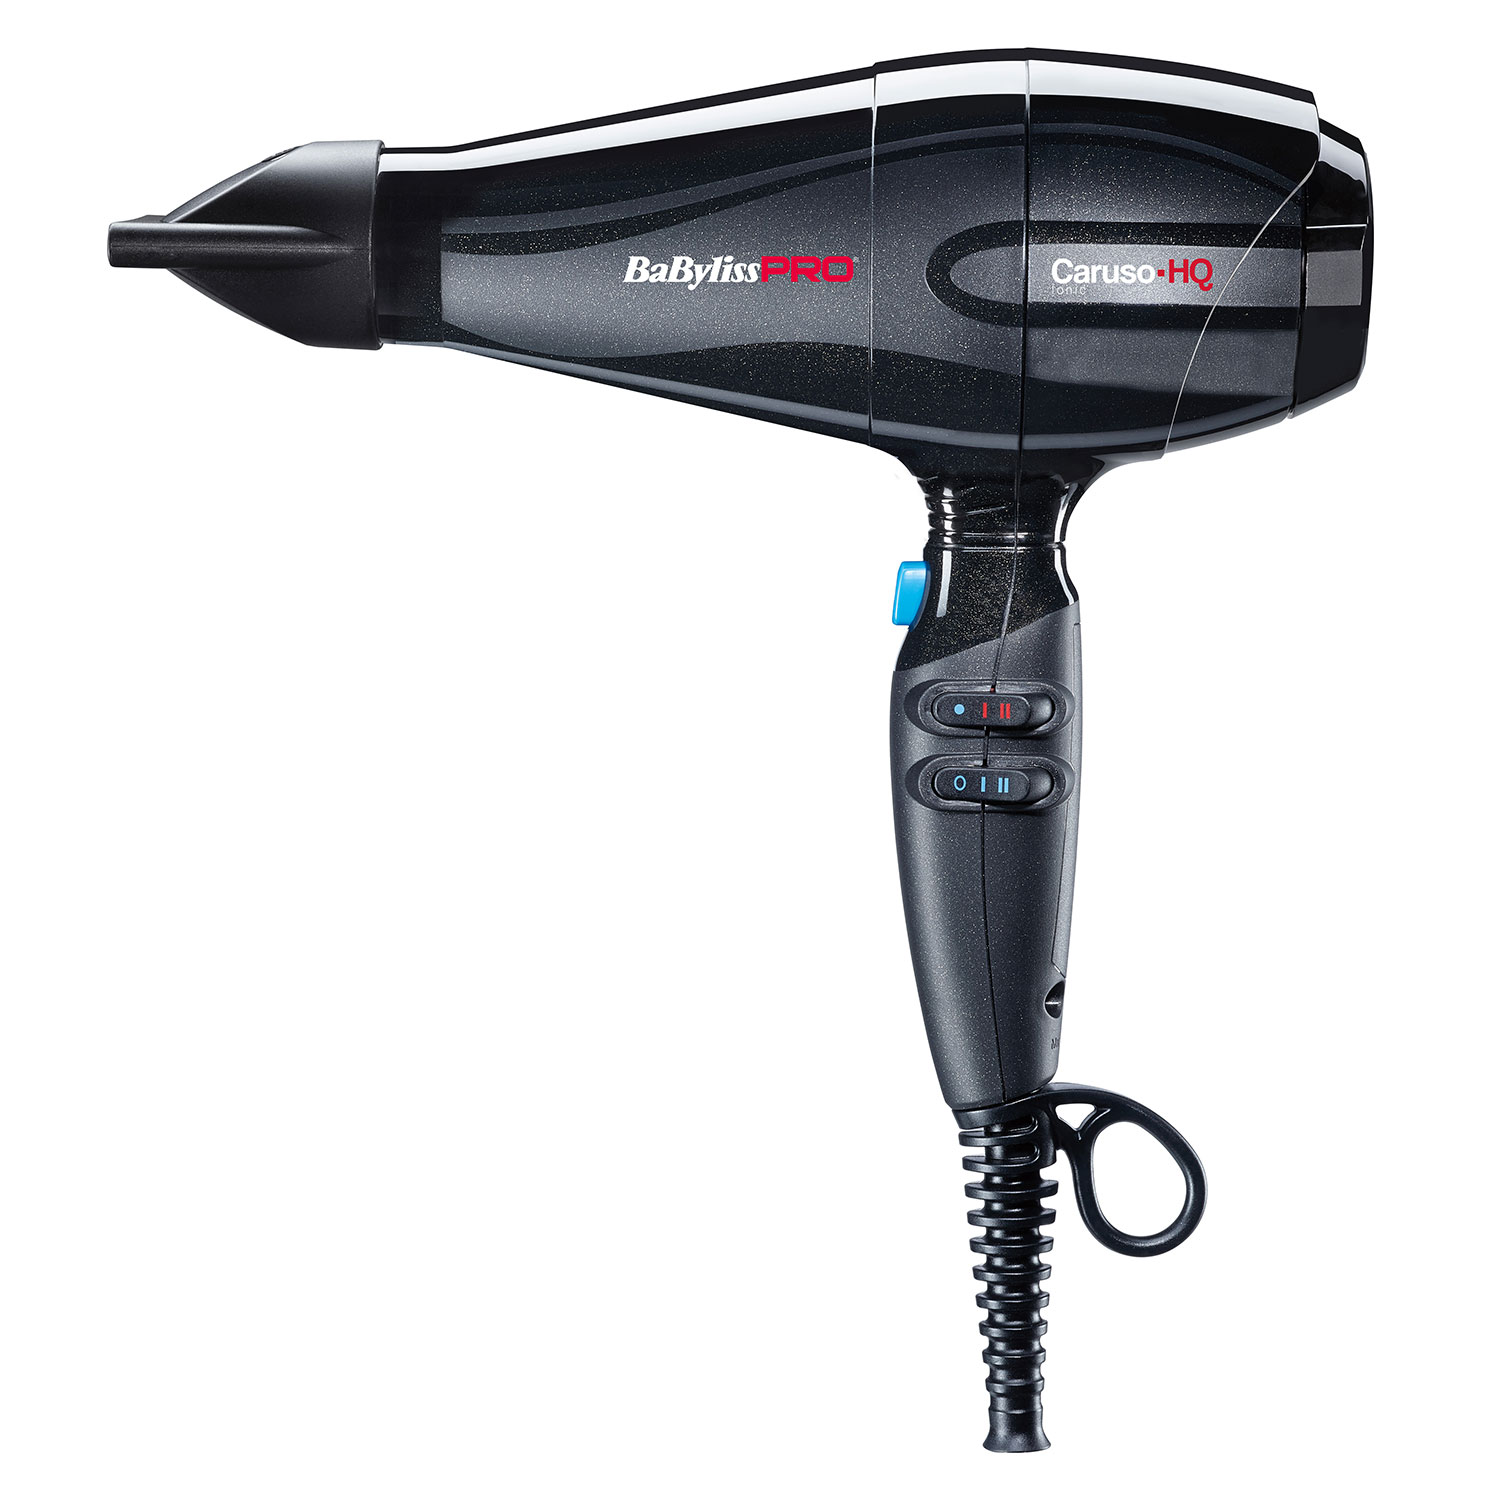 BaByliss Pro - Caruso-HQ 2400W Ionic BAB6970IE